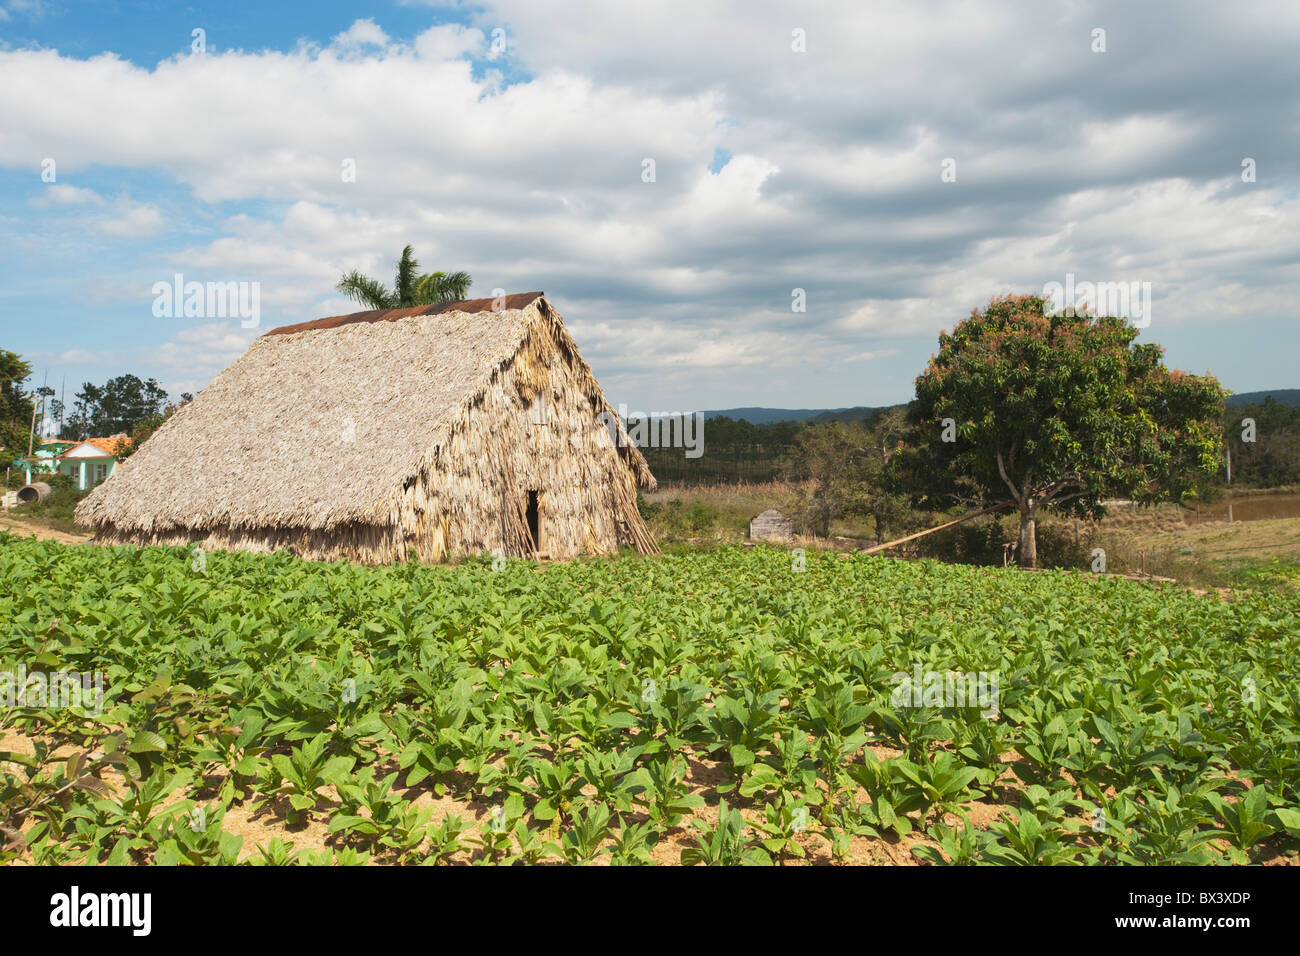 Tabacco Drying Shed; Viñales, Cuba - Stock Image